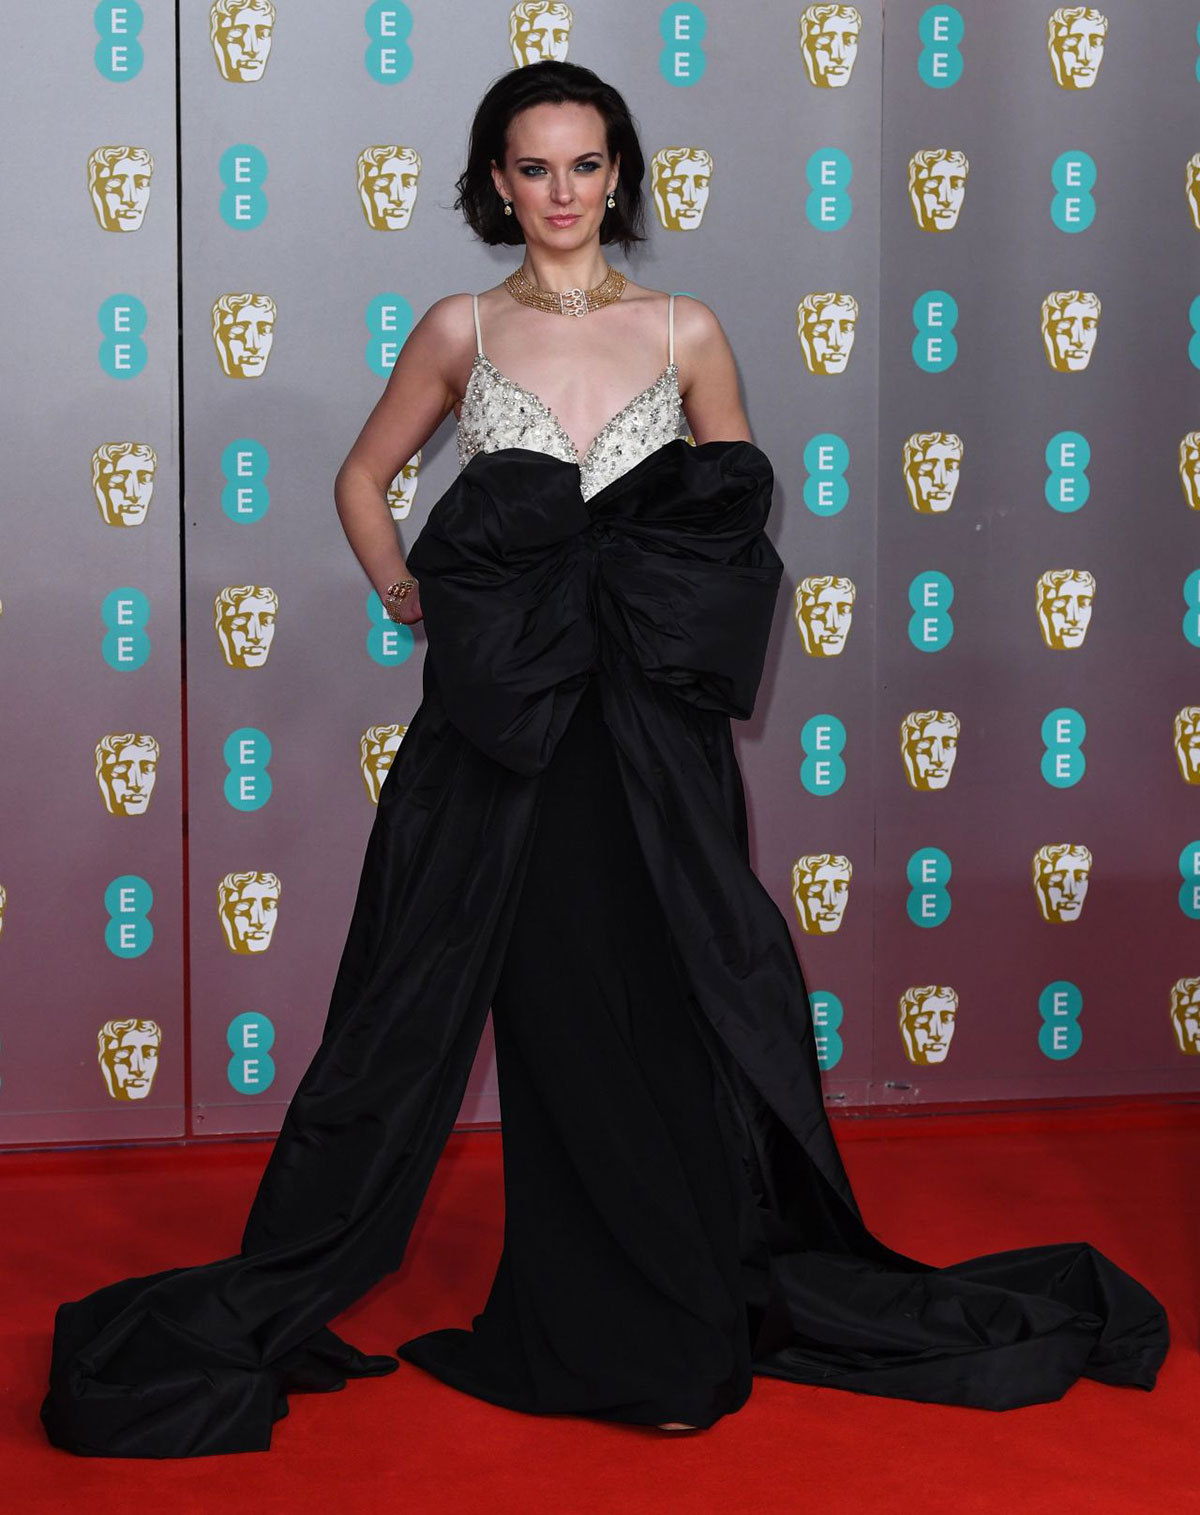 Red Carpet Charlotte Carroll At Ee British Academy Film Awards 2020 Justfabzz